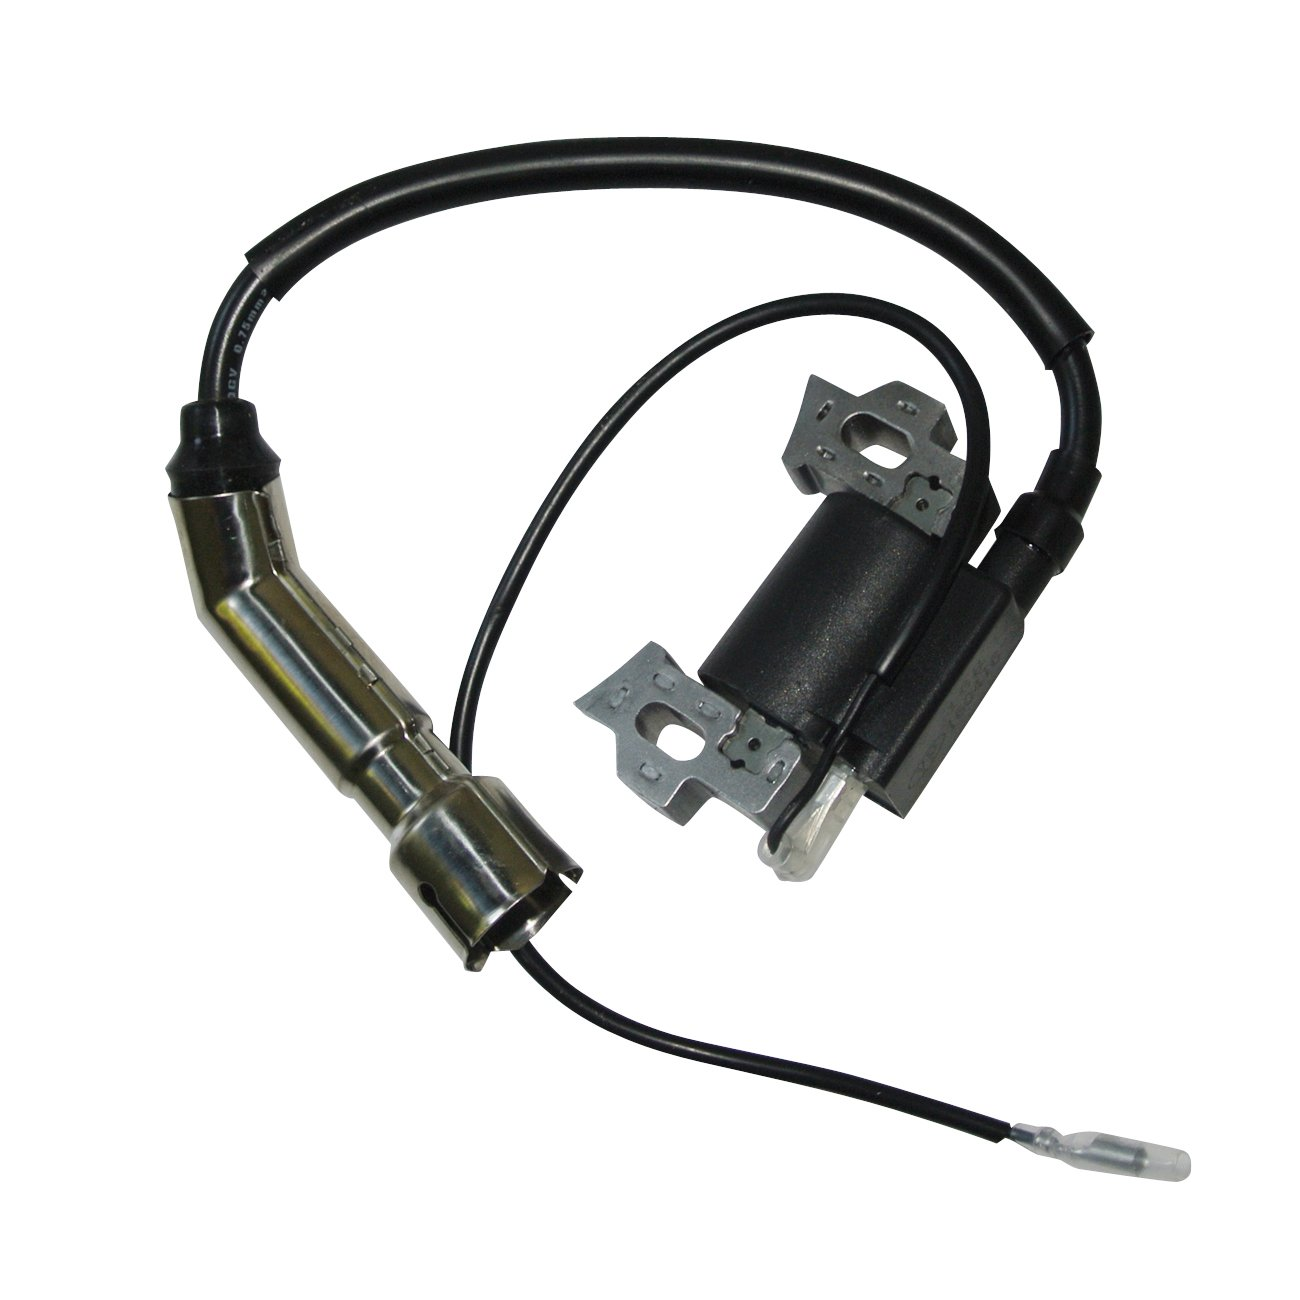 JRL Ignition coil for MTD, Cub Cadet, 751-10792, 951-10792